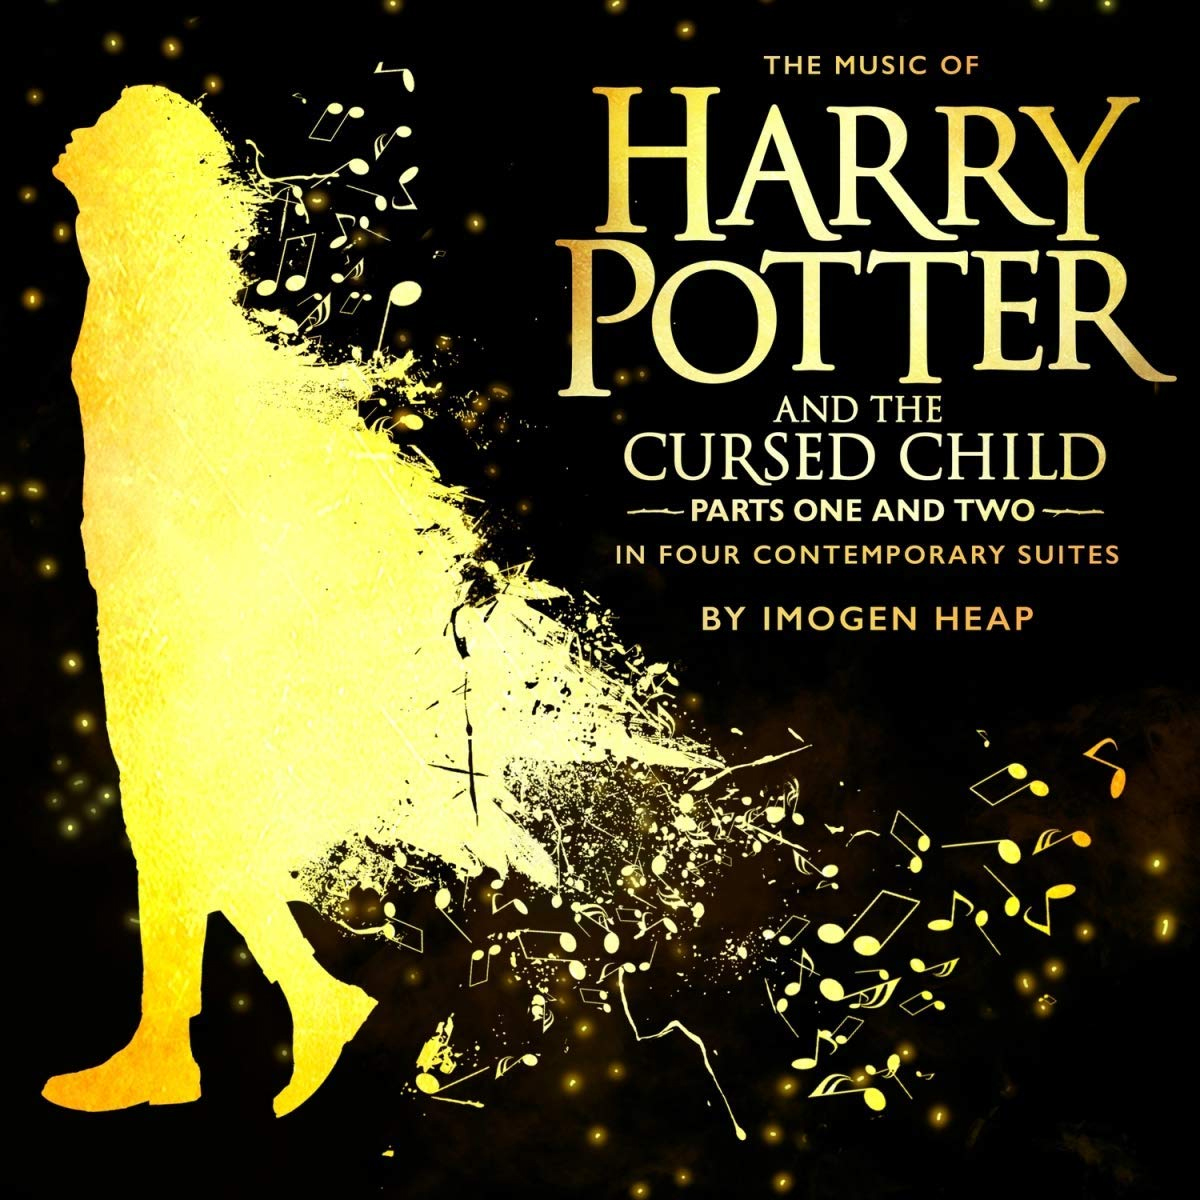 Imogen Heap. The Music Of Harry Potter And The Cursed Child - In Four Contemporary Suites (2 LP)